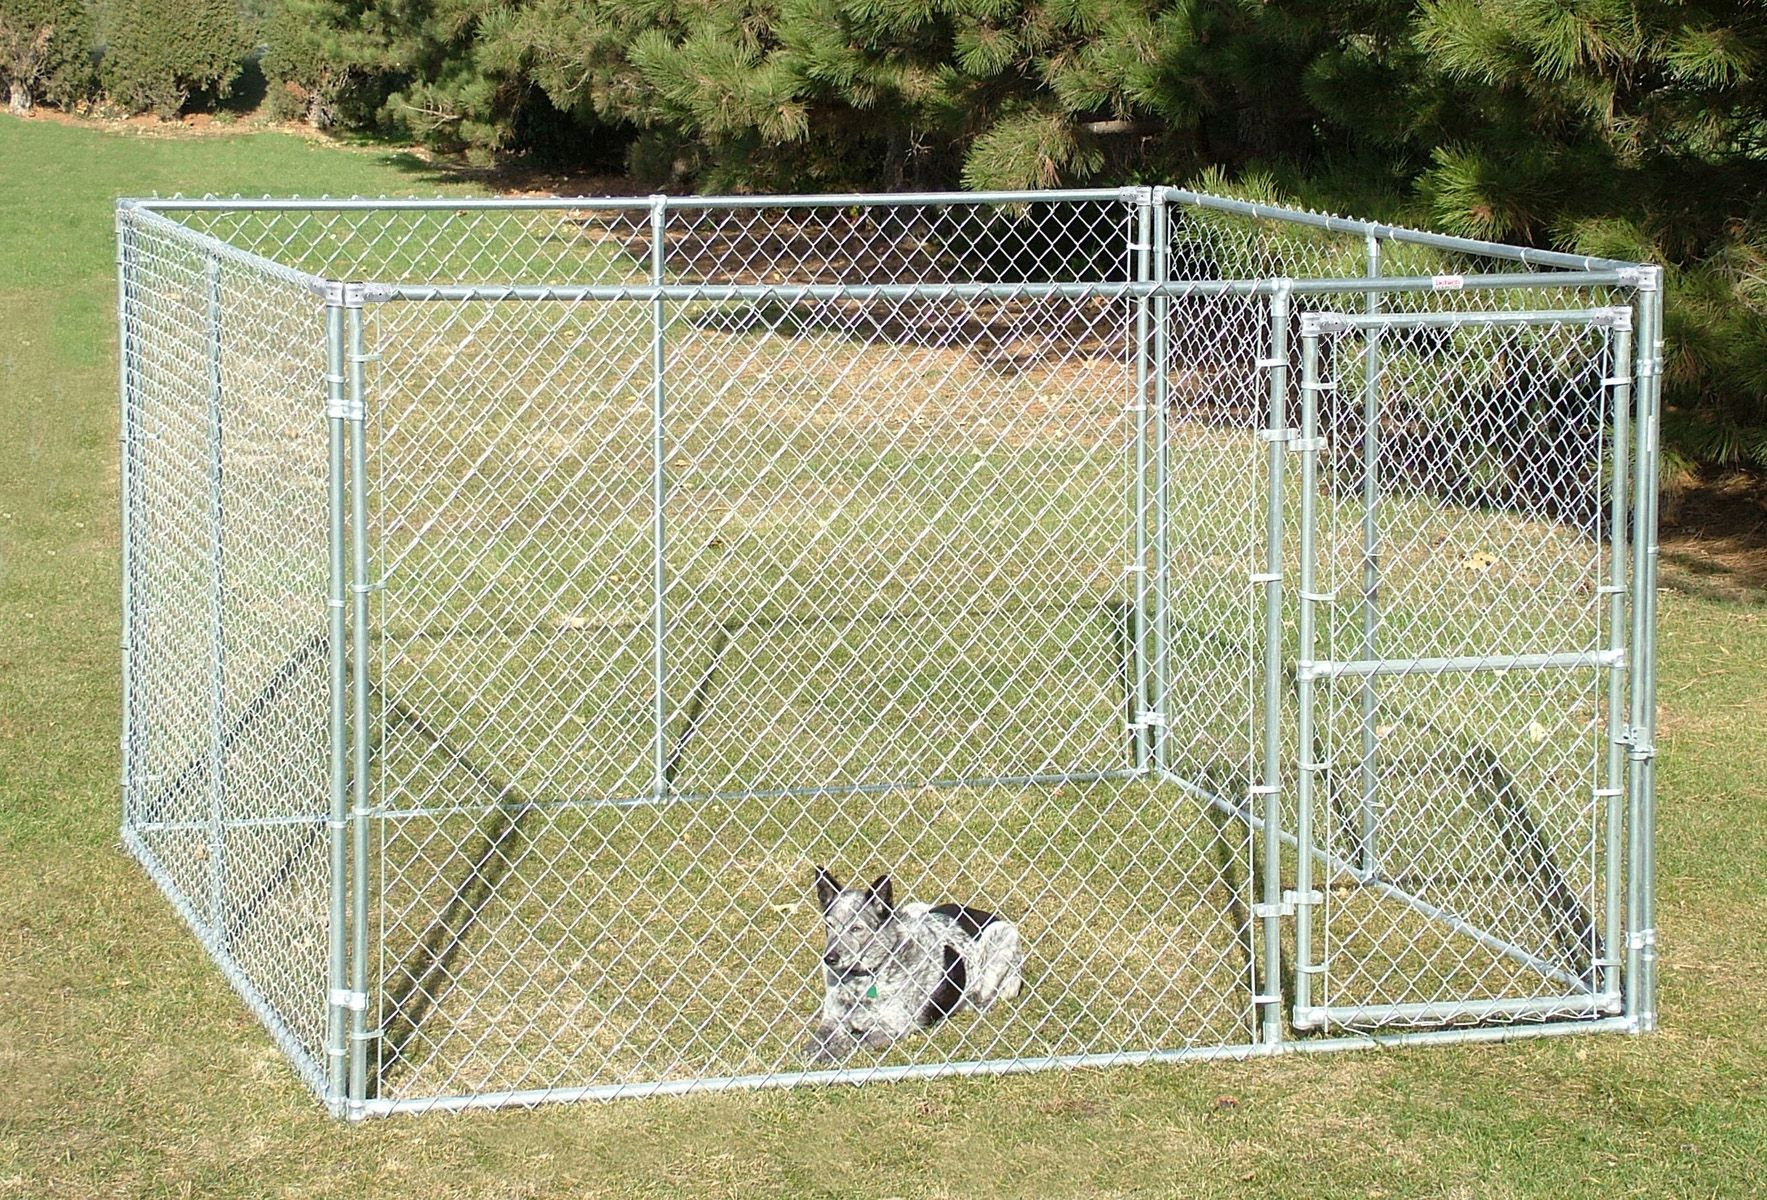 Complete Kennel 10 X 10 X 6 Value Chain Link Kennels Dog Kennel Pet Kennels Dog Runs